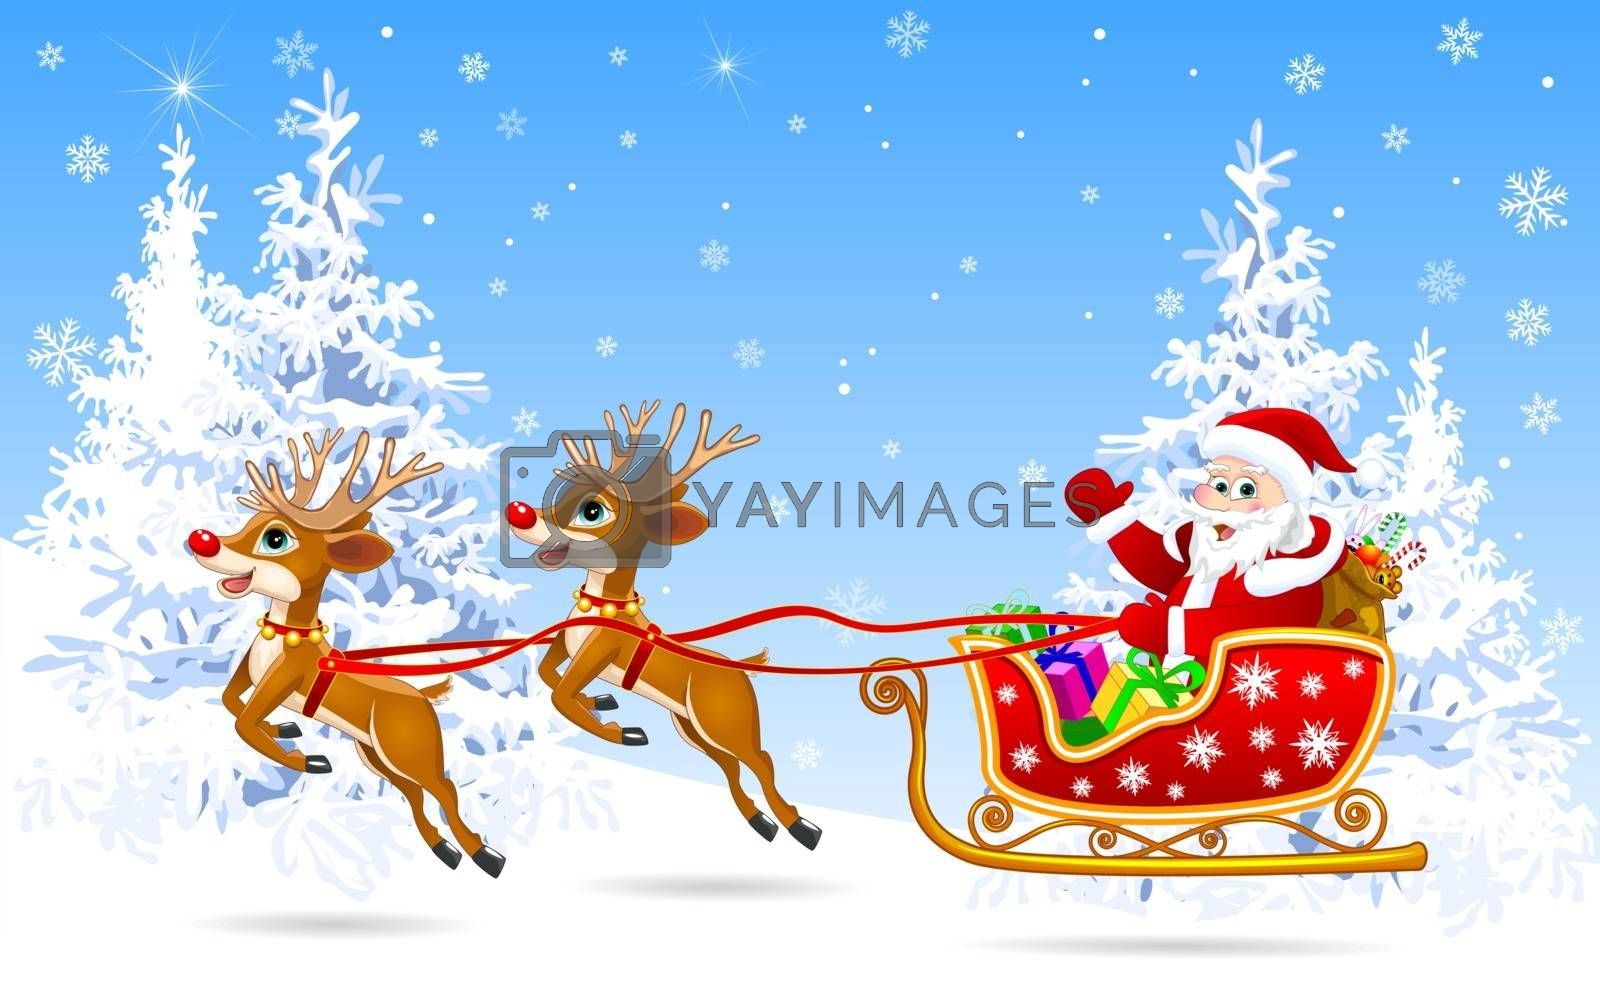 Santa on sleigh with deer 1 by liolle